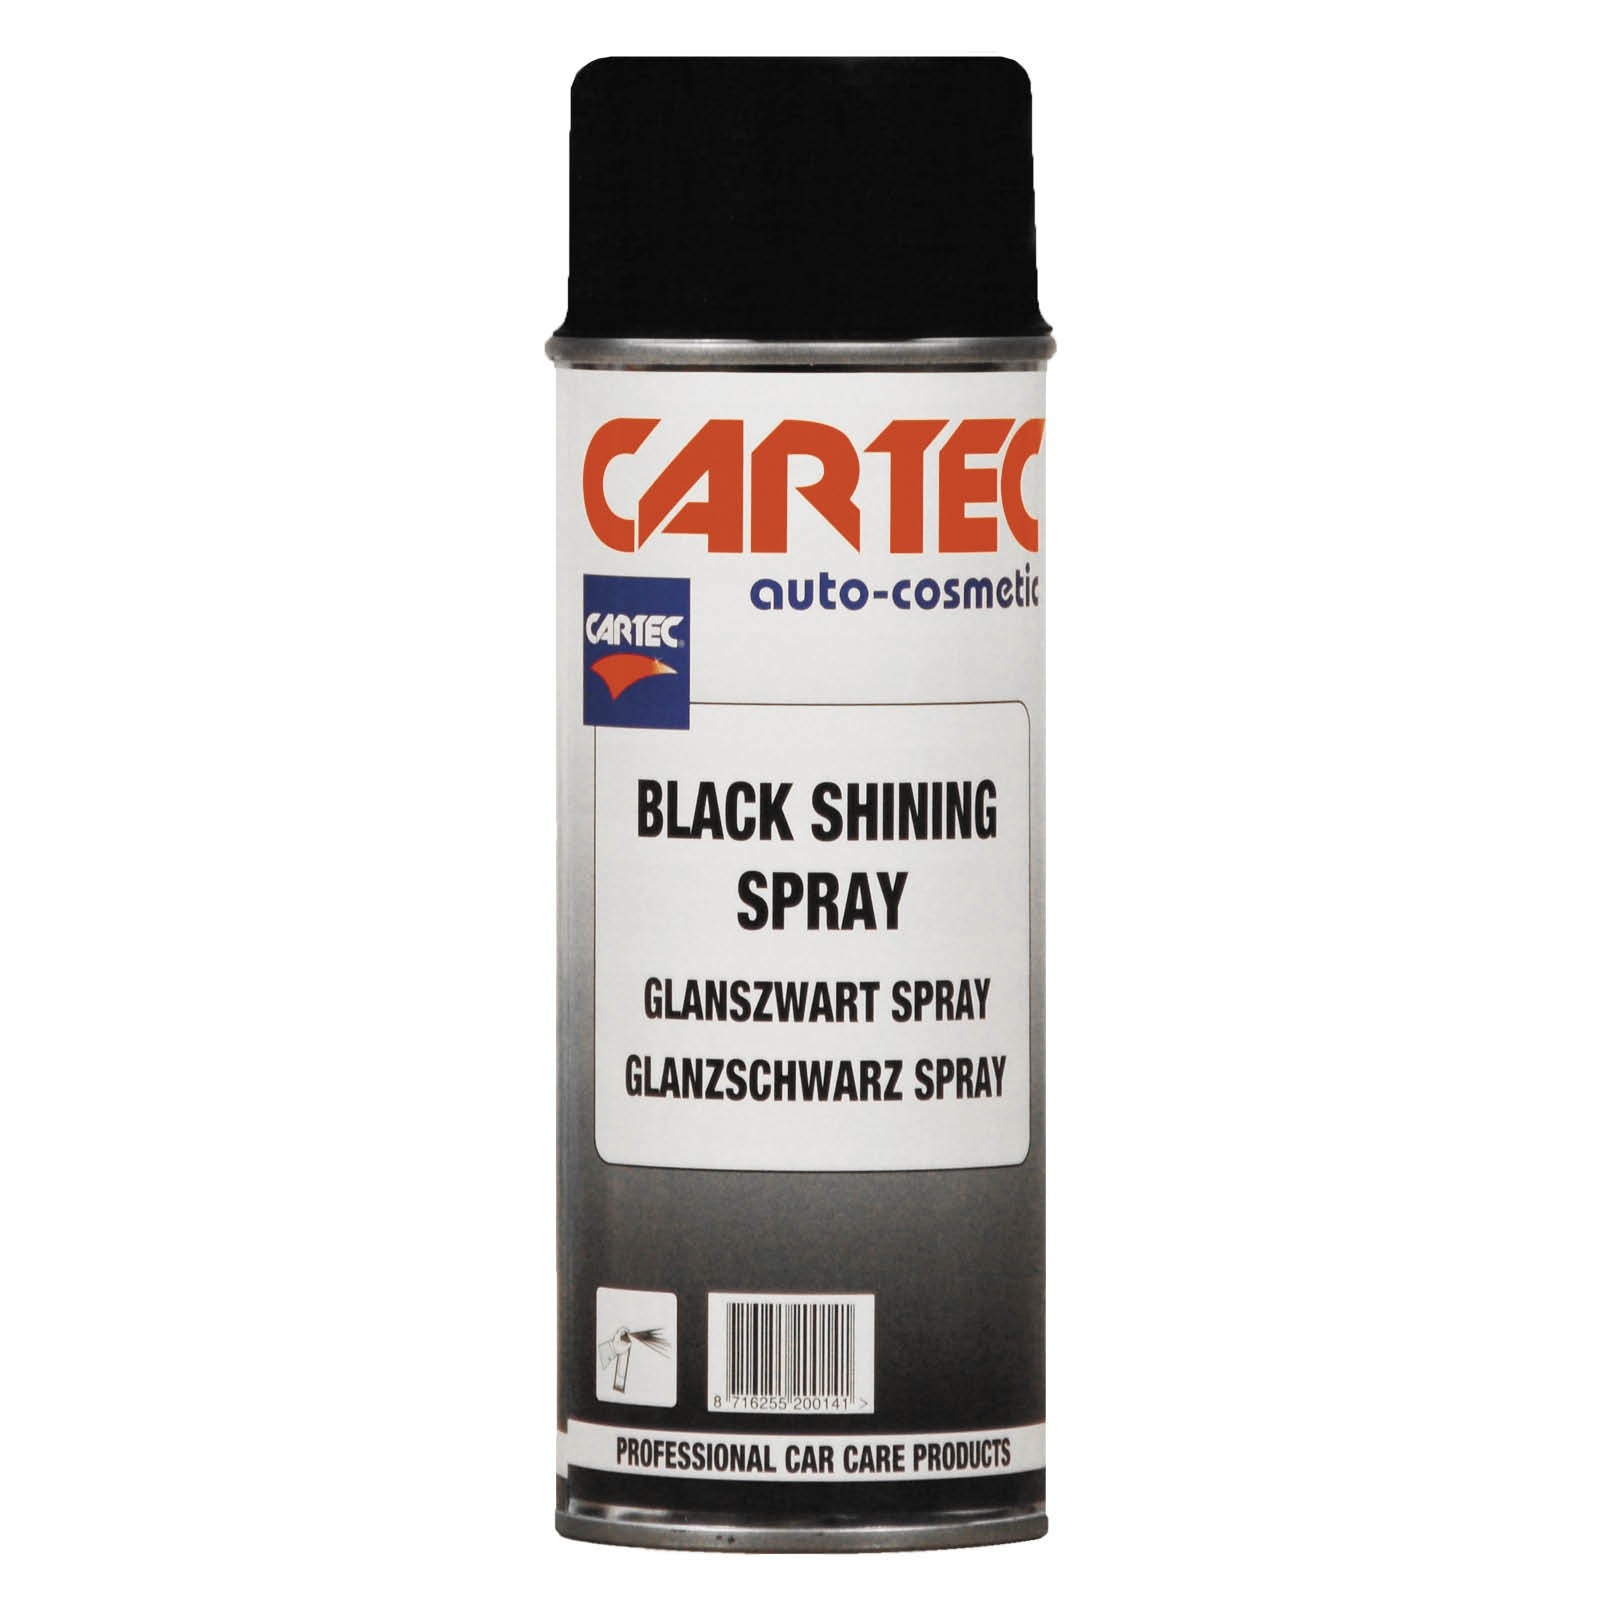 Black Shining Spray